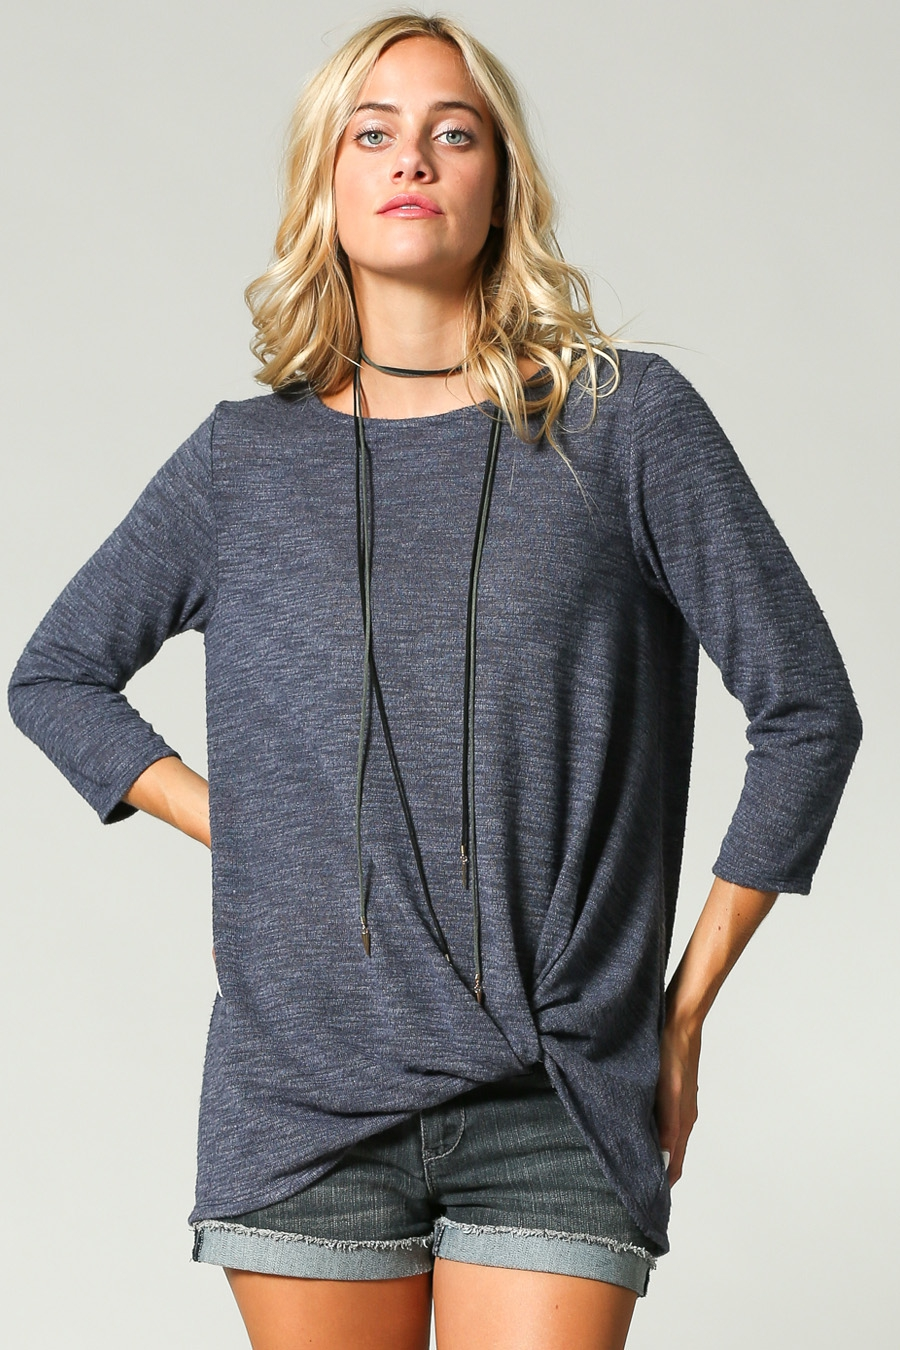 ULTRA SOFT TWISTED HEM TOP - orangeshine.com